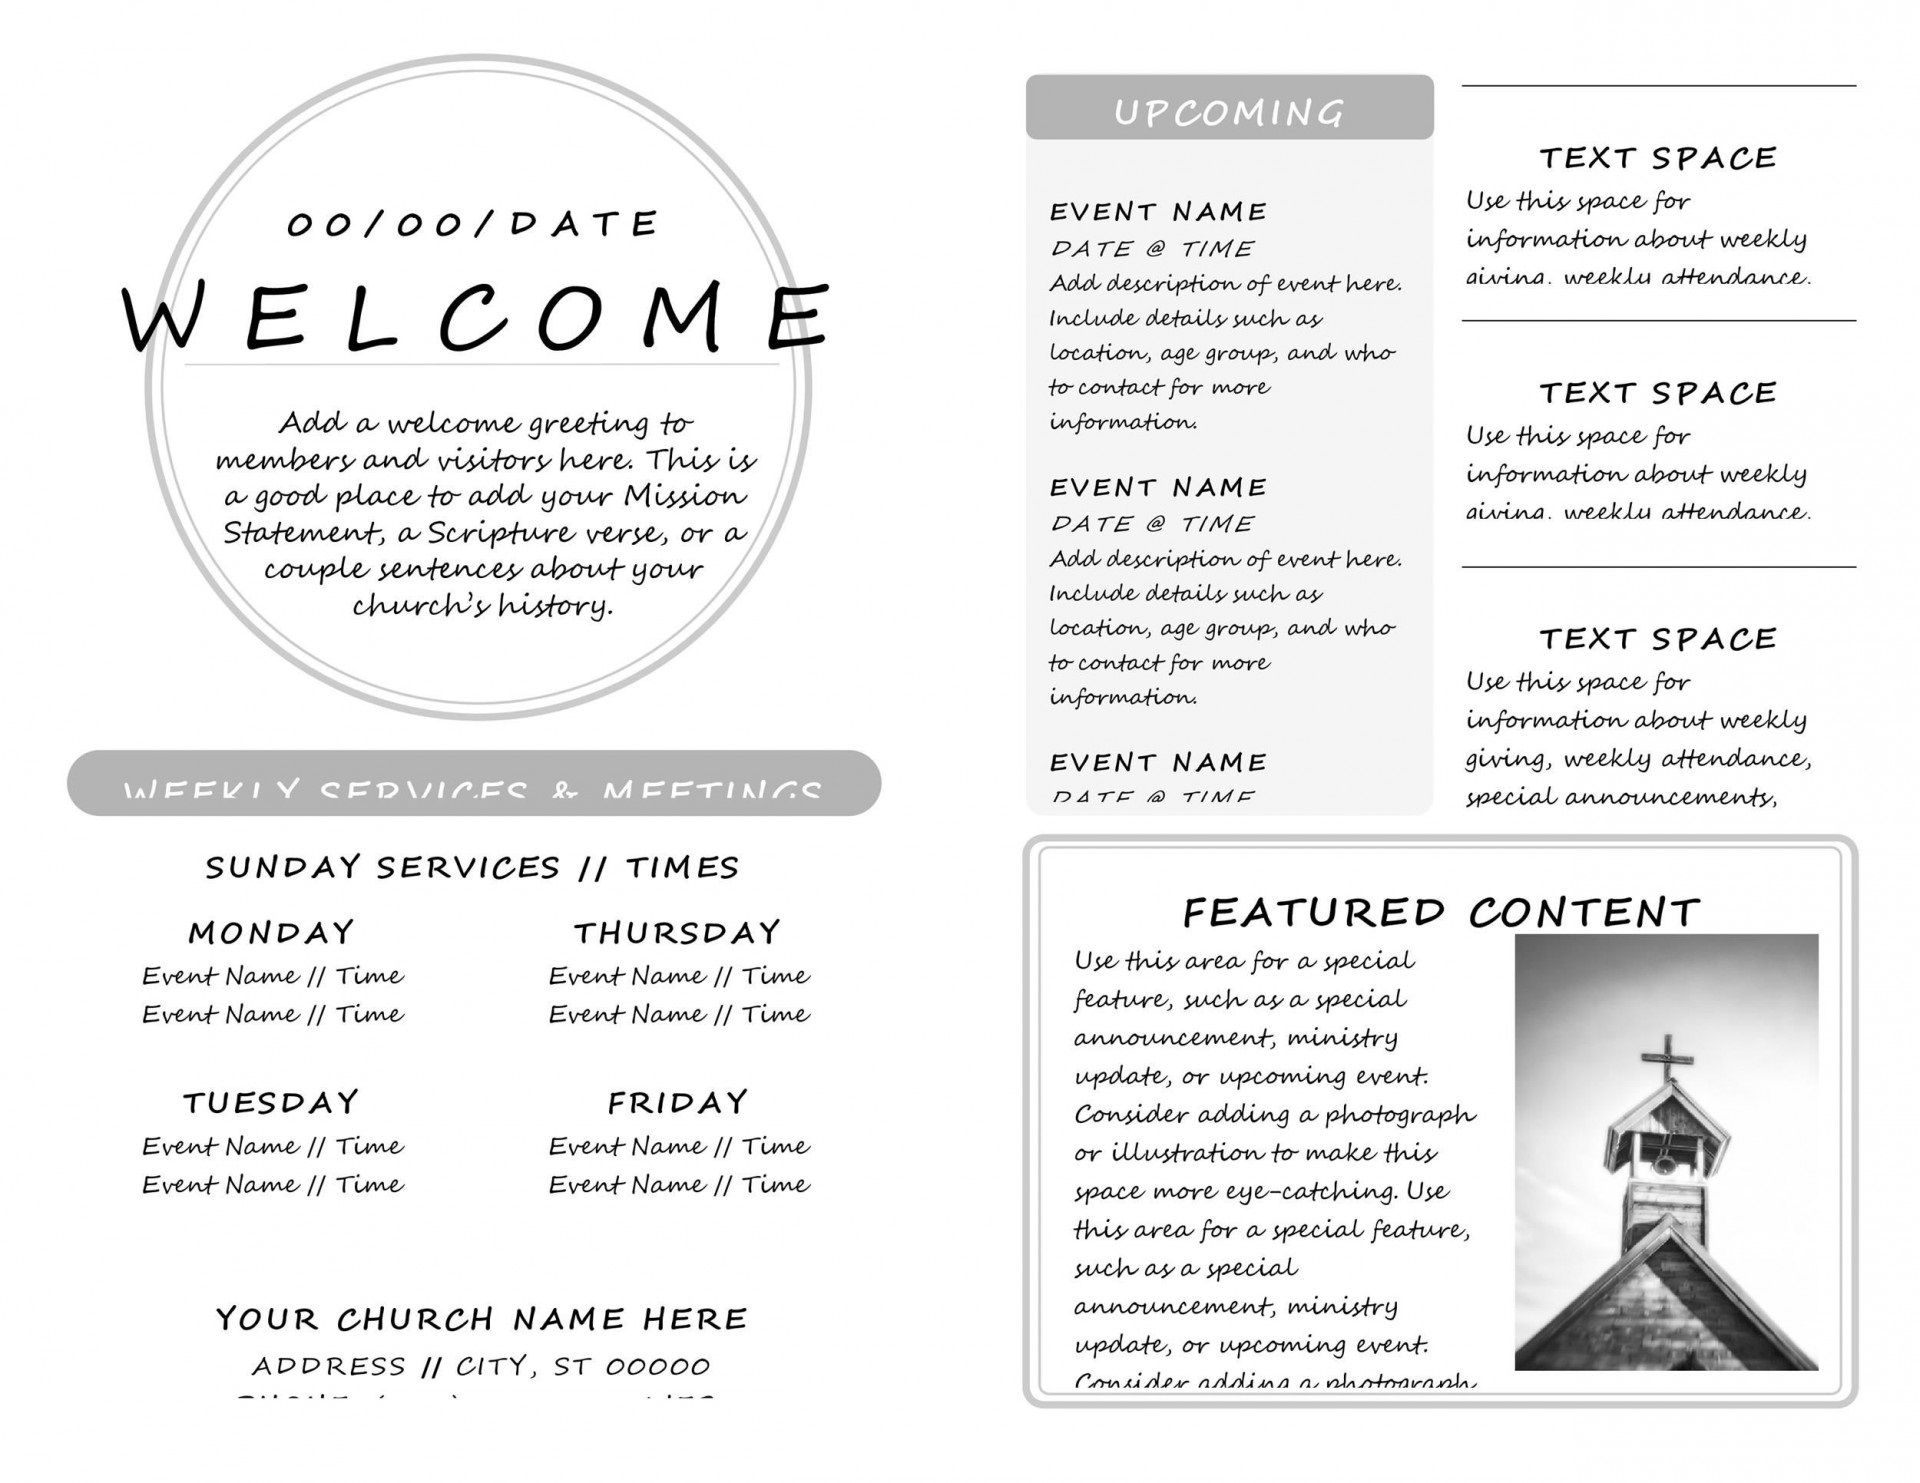 007 Awful Free Church Program Template Doc Highest Quality